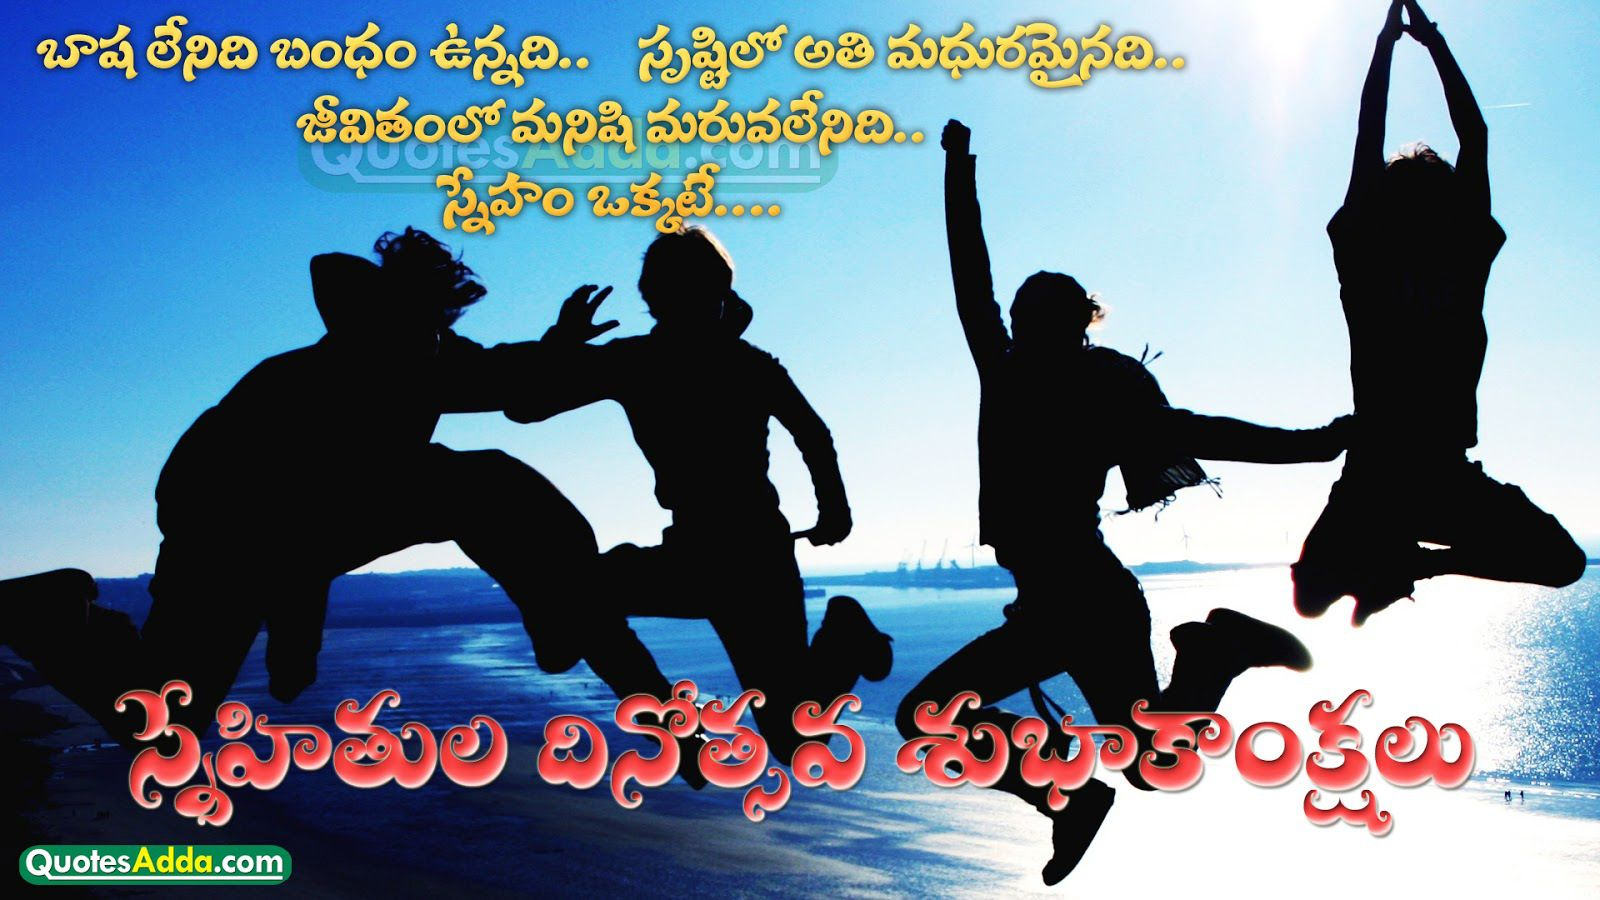 Funny Quotes Images In Telugu Quotes Funny Quotes Funny Images With Quotes Image Quotes